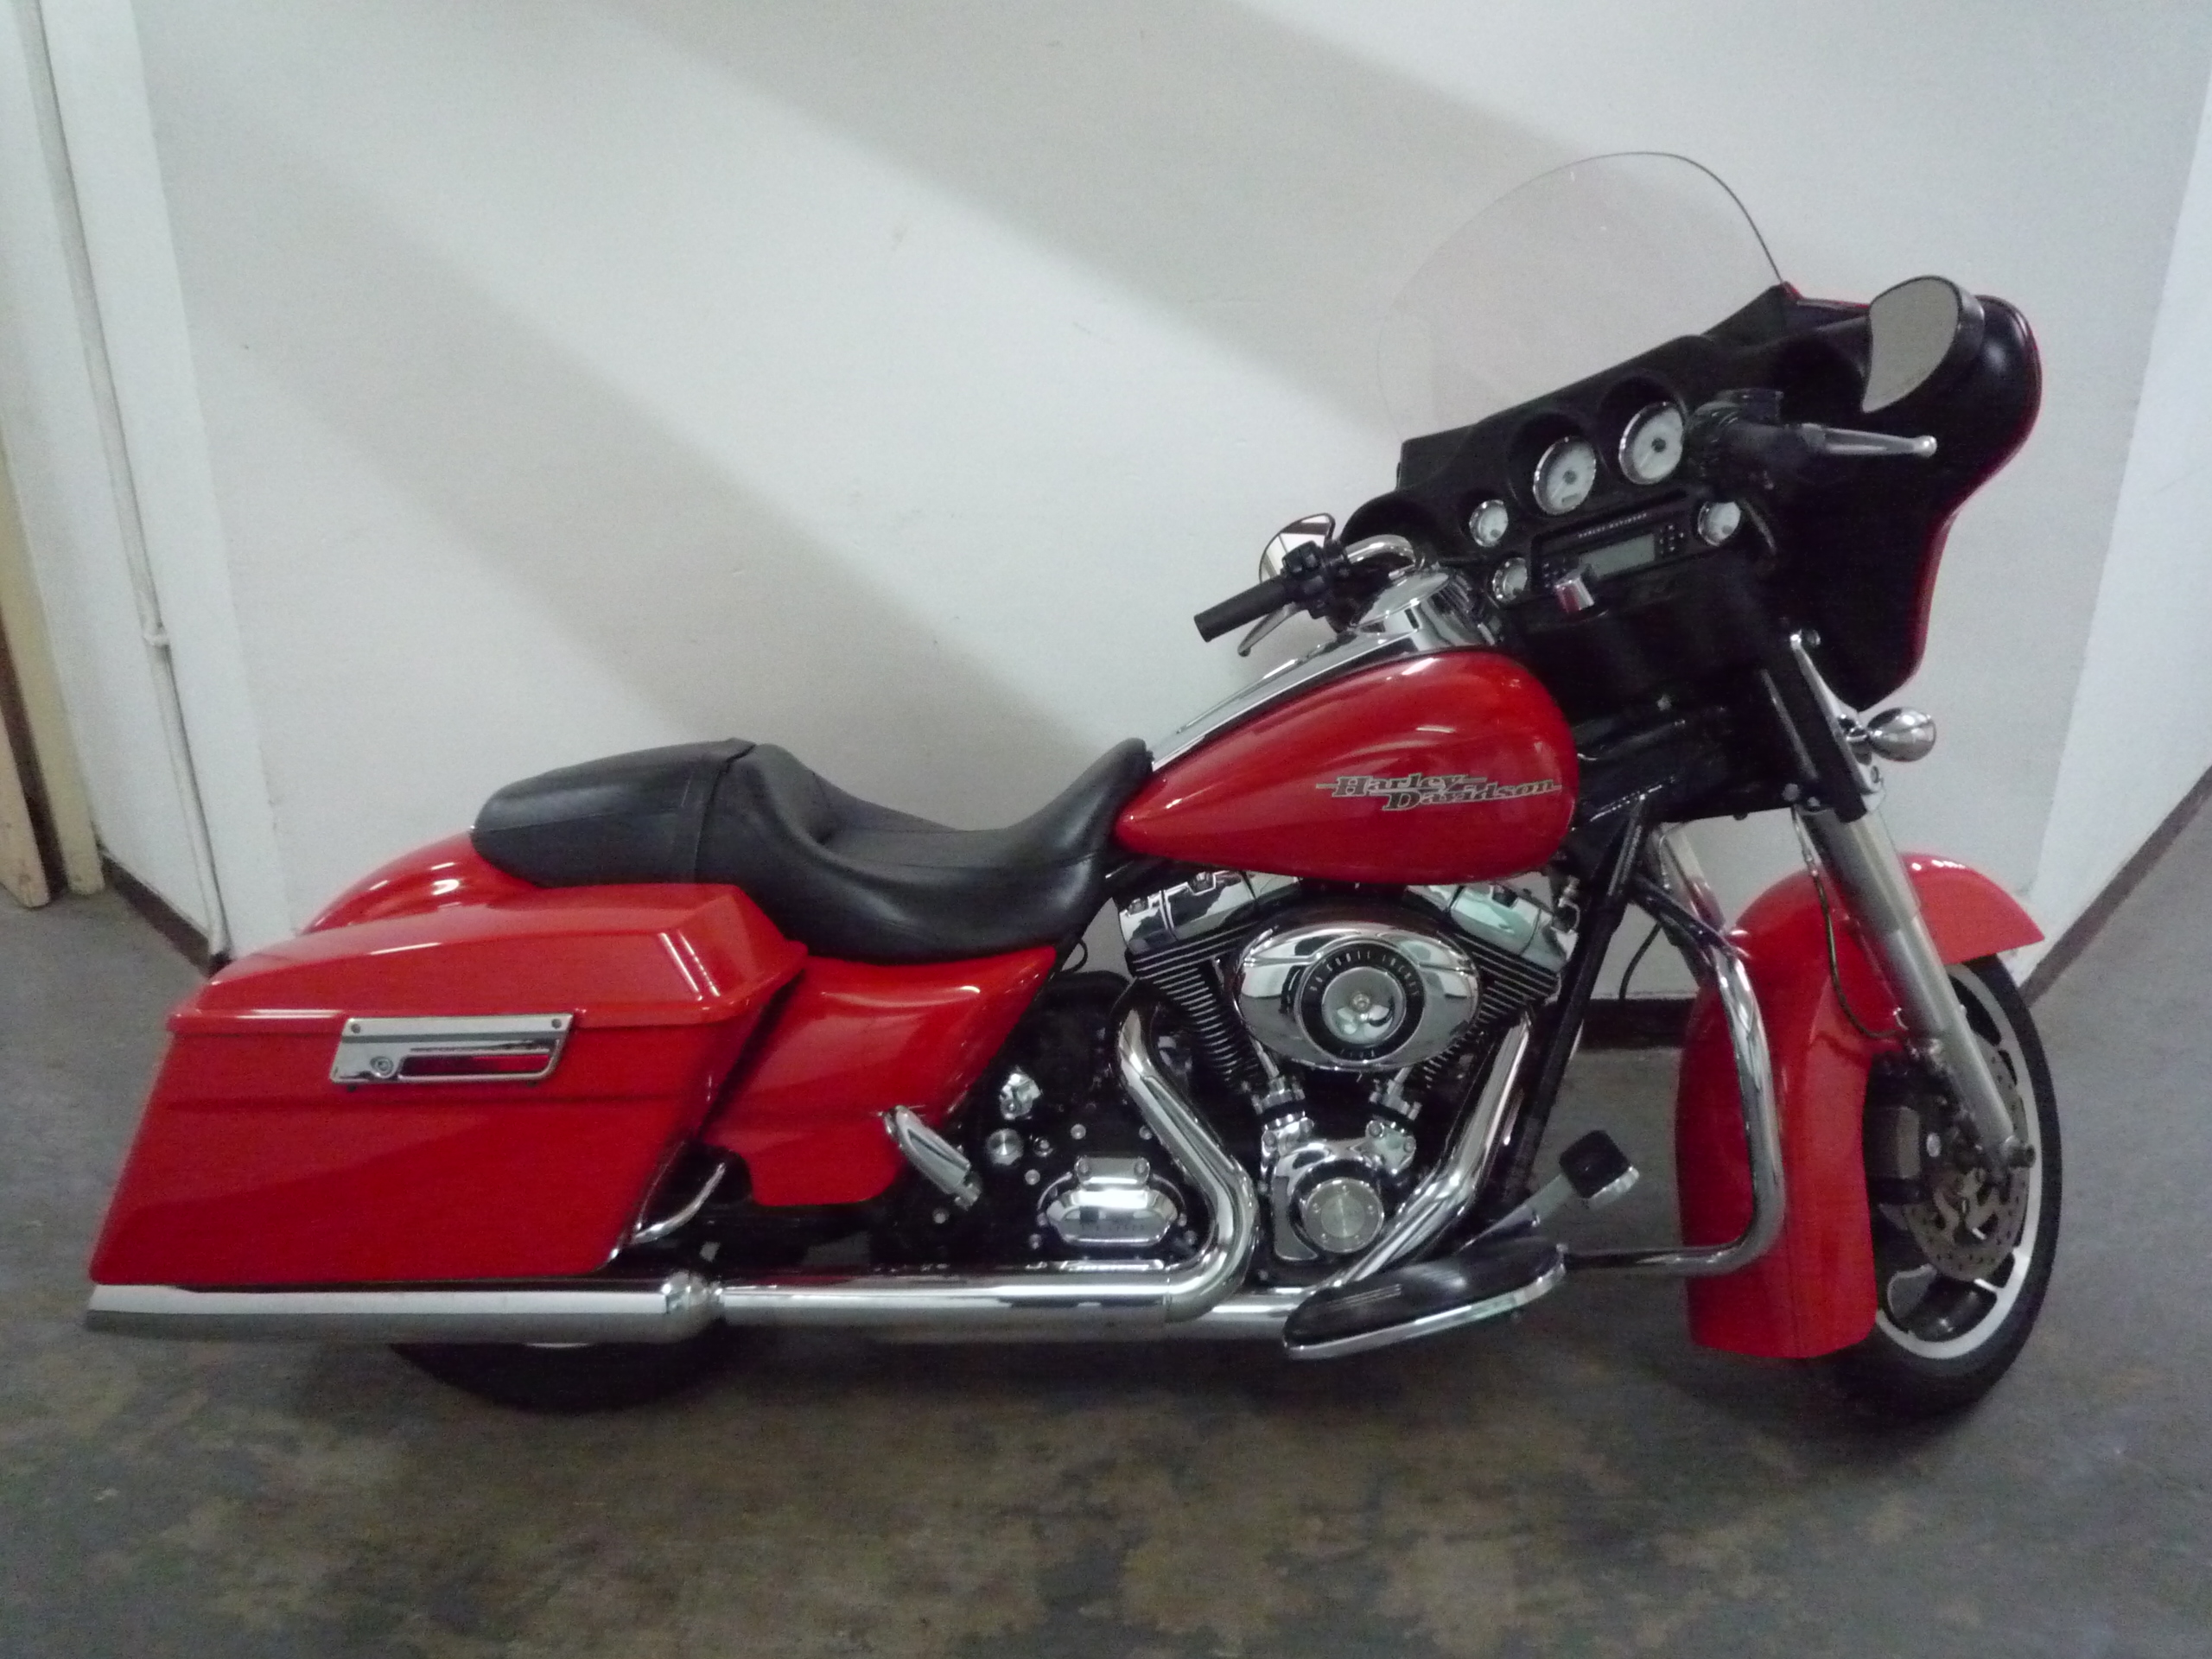 Self Storage For Motorcycle >> 2012 Harley-Davidson FLHX Street Glide ***SOLD*** | Motion Motorcycle / Motion Motor Group